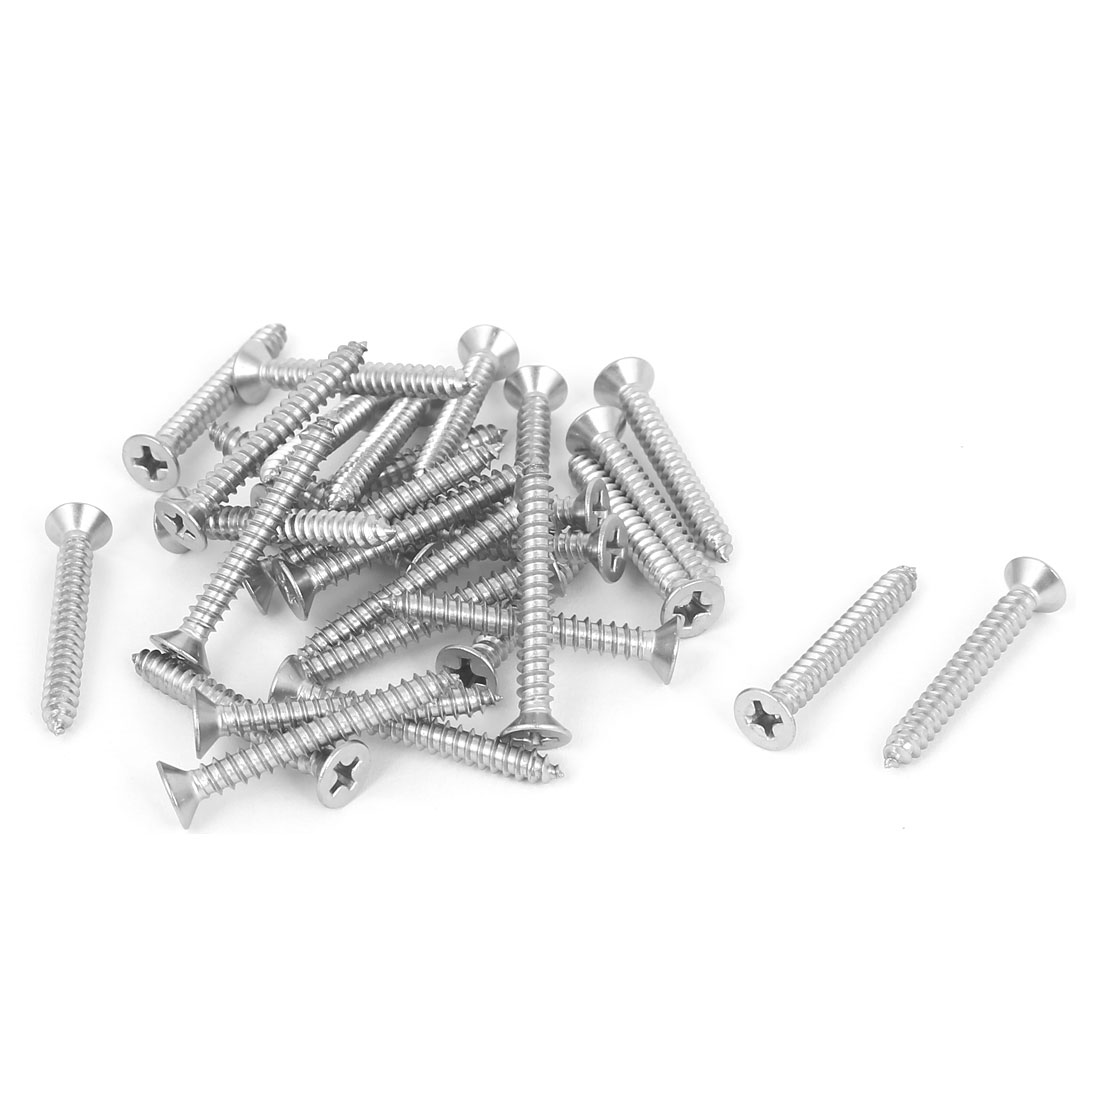 M3.9x32mm 316 Stainless Steel Flat Head Phillips Self Tapping Screws Bolts 30pcs